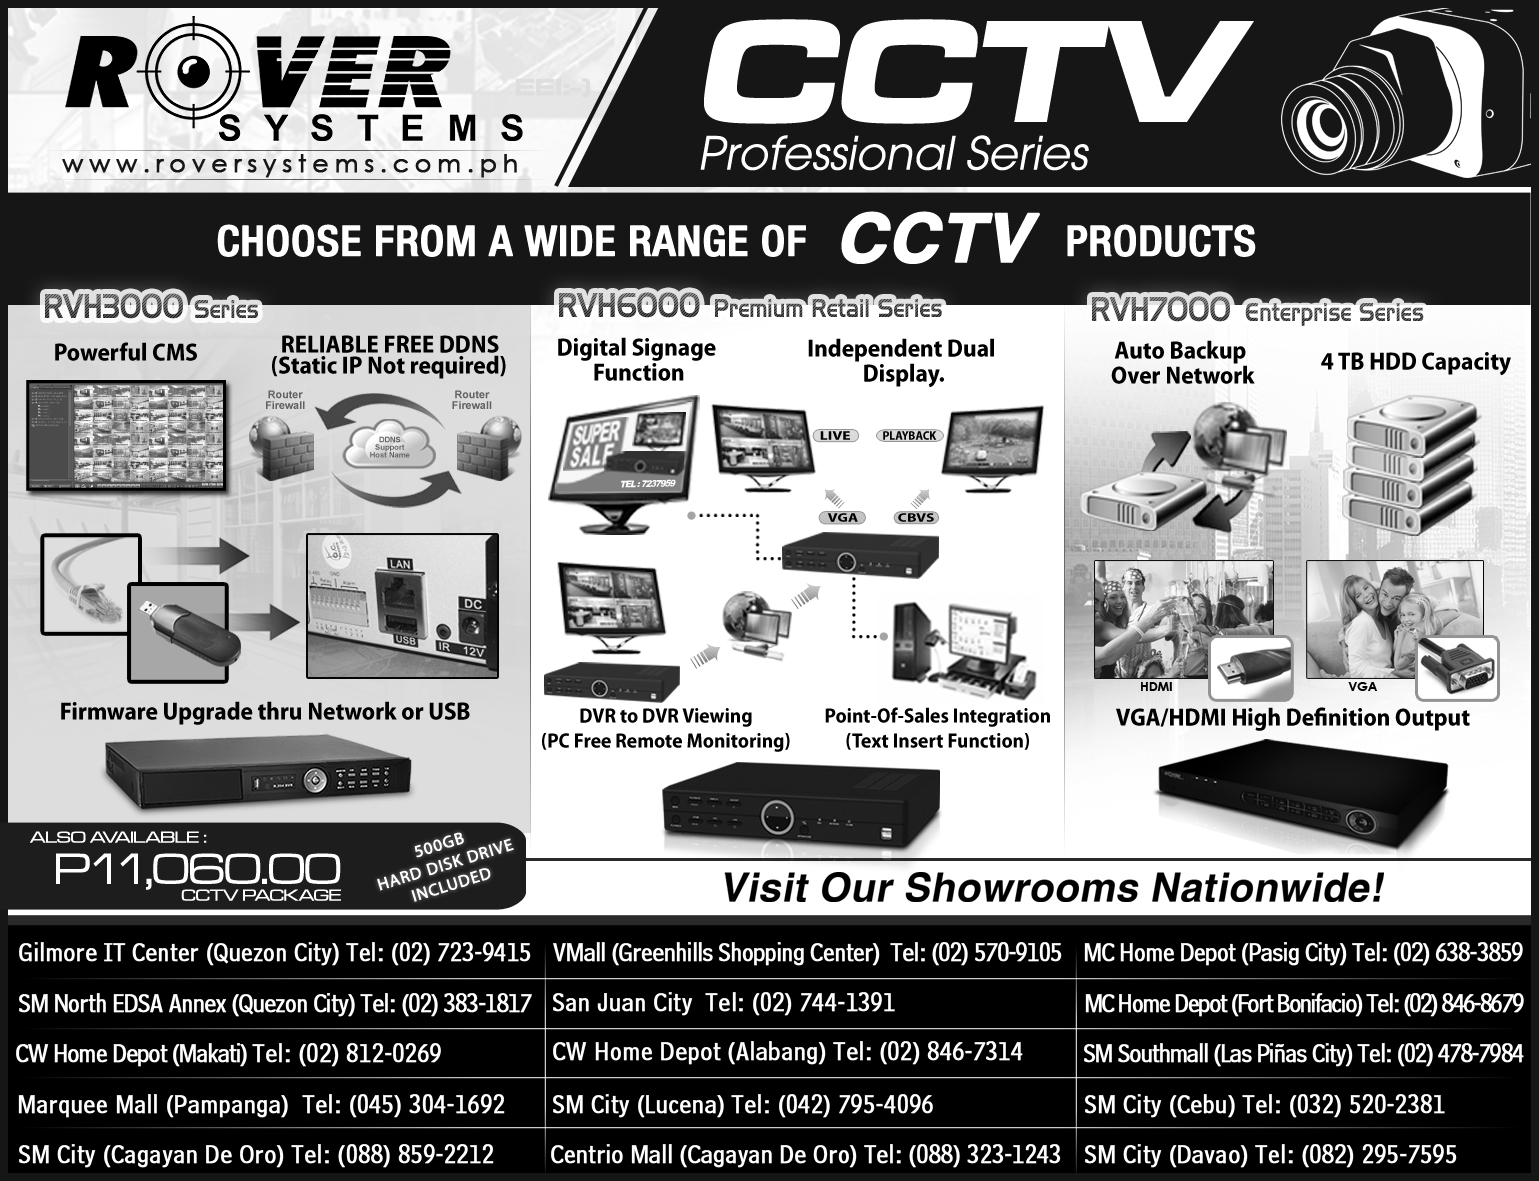 Vgsy2000 together with Sitewise also What Wires Are In A S Video Cable besides Case Study Cctv Control Room Boston Borough Council also How To Install And Connect Ptz Camera. on cctv camera distributor